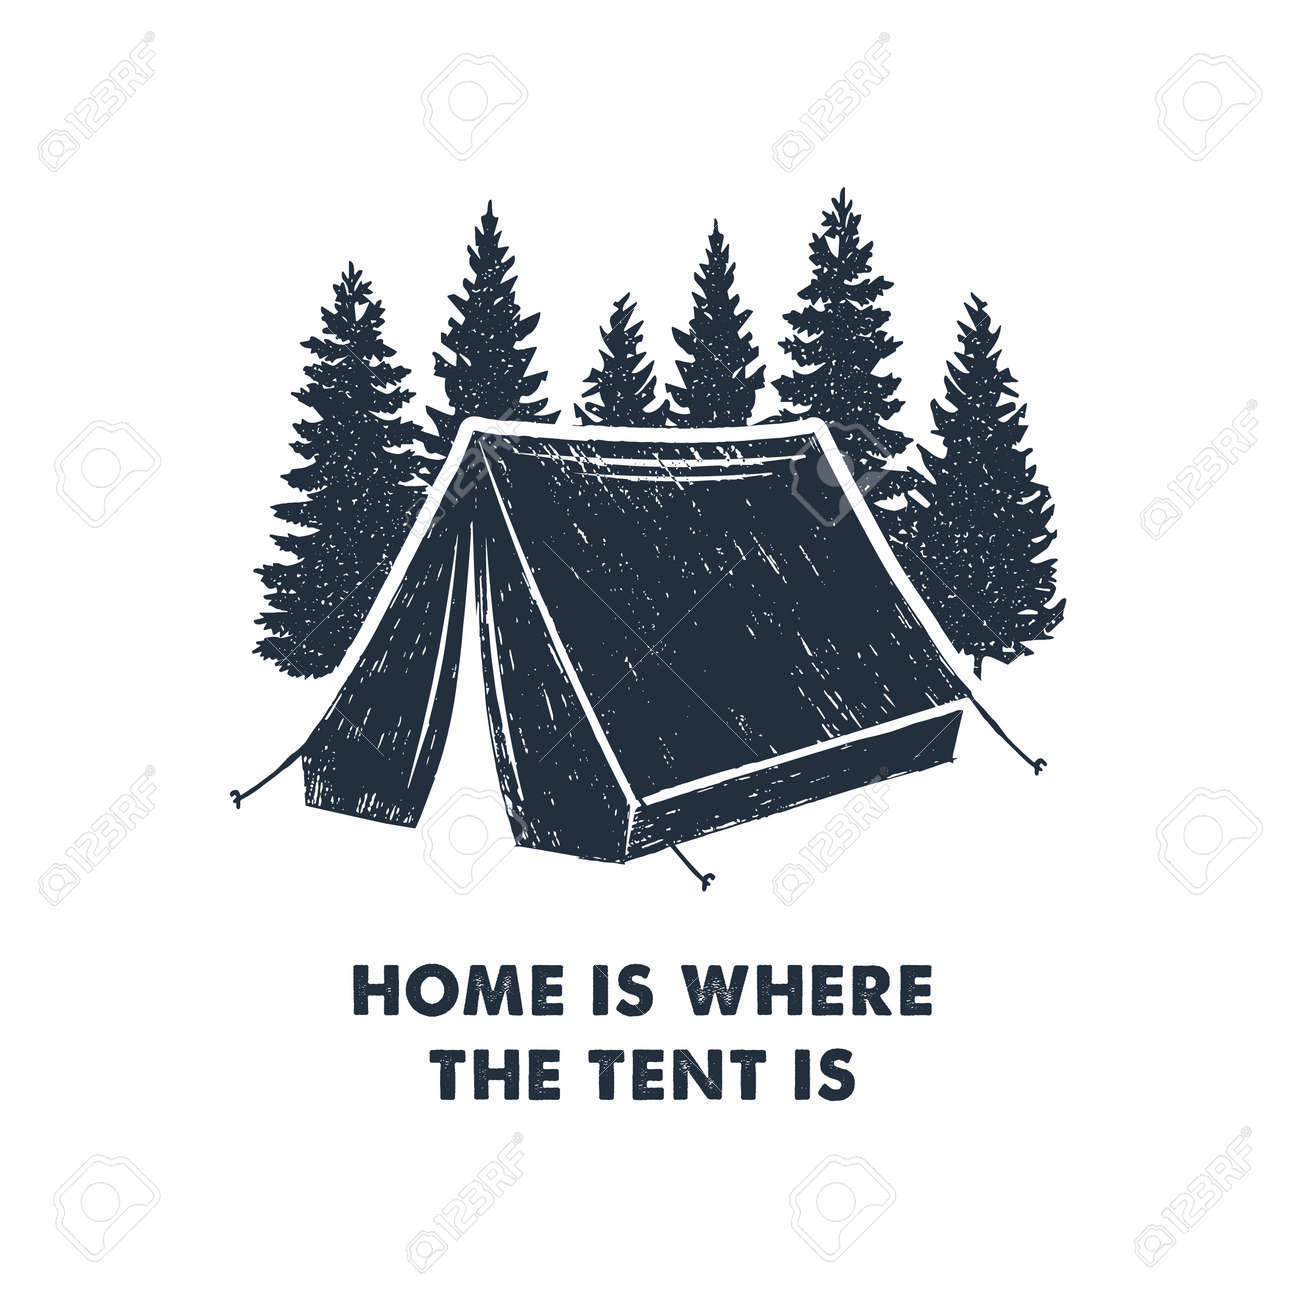 """Hand drawn inspirational label with pine trees and camping tent textured vector illustrations and """"Home is where the tent is"""" lettering. - 91098072"""